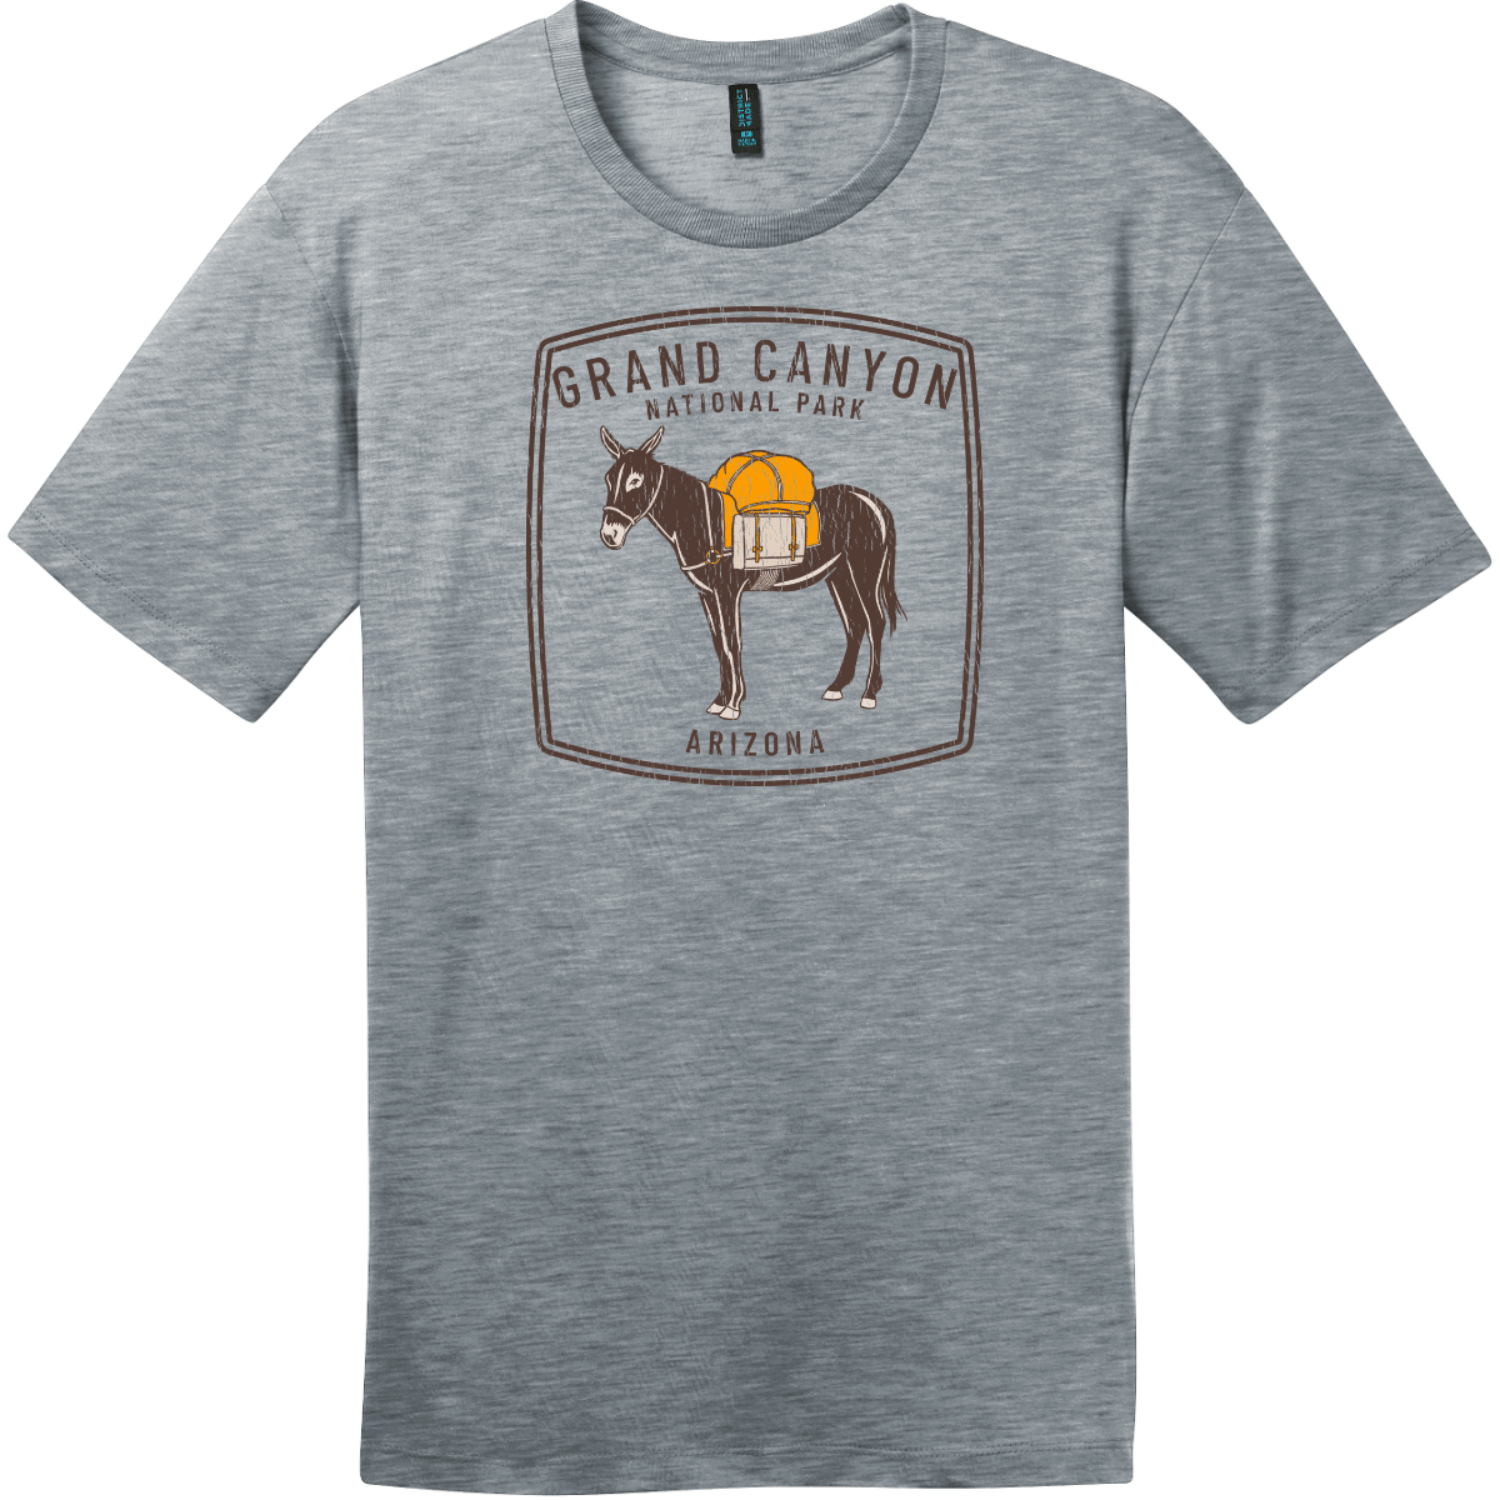 Grand Canyon National Park Donkey Vintage T-Shirt Heathered Steel District Perfect Weight Tee DT104